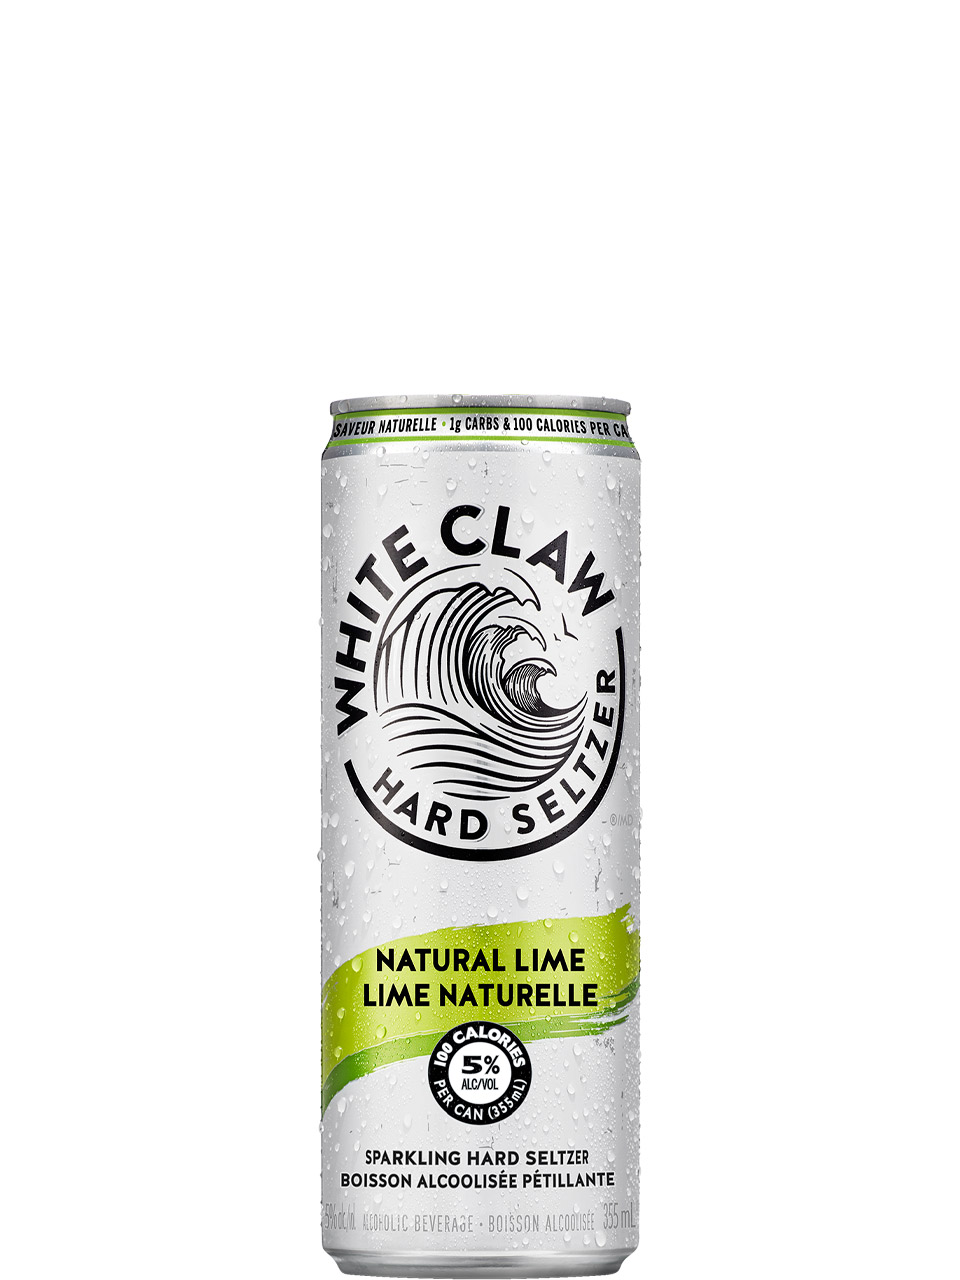 White Claw Natural Lime 6 Pack Cans